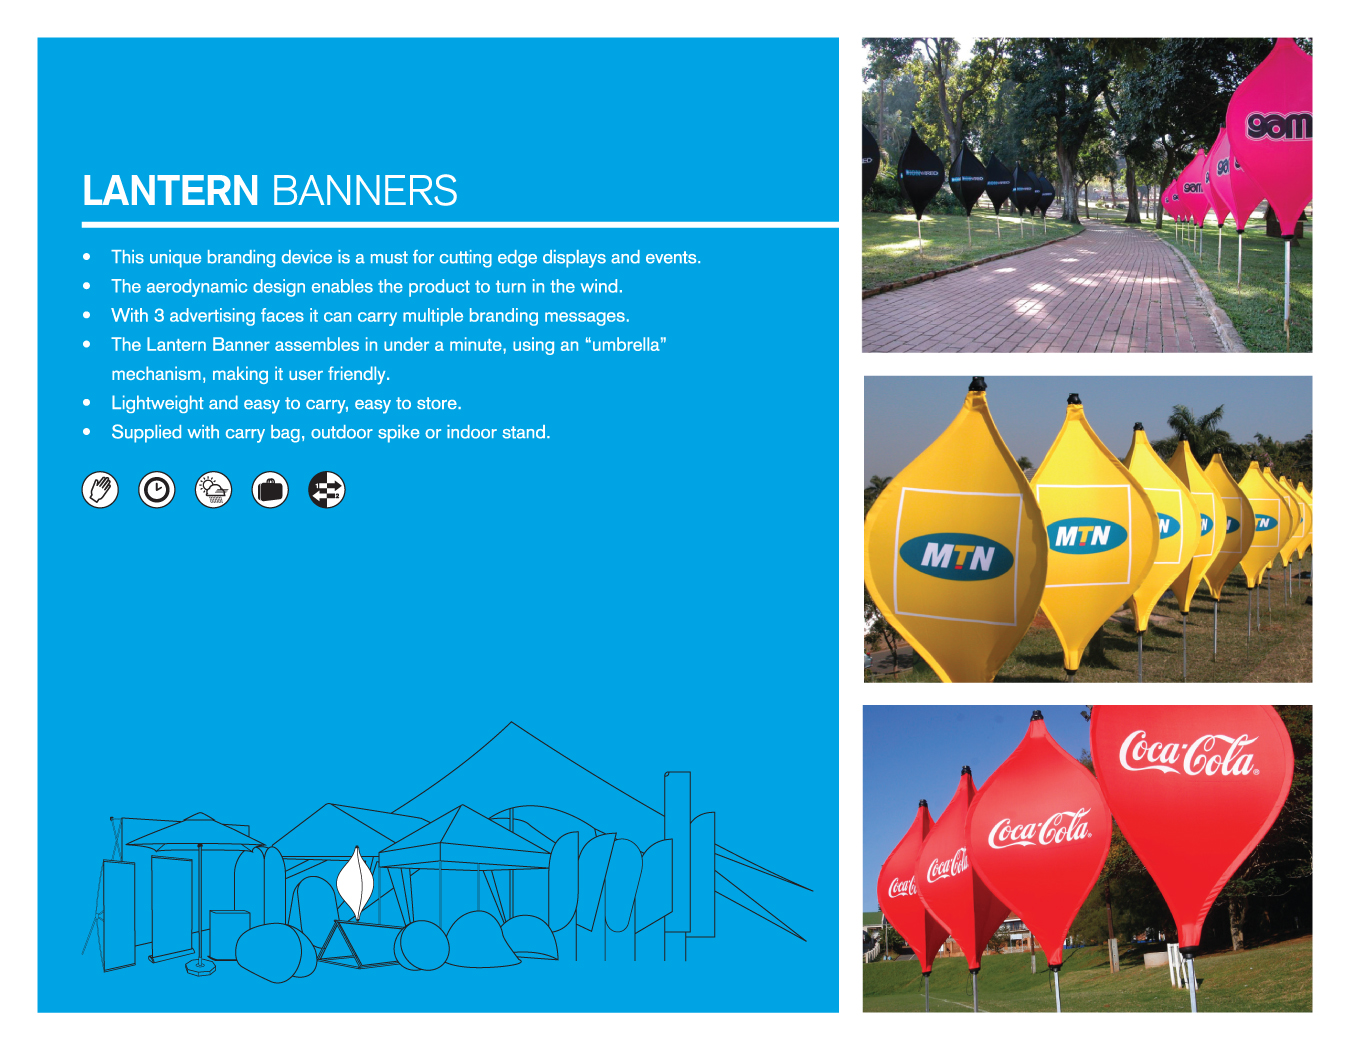 Portfolio image for BFBD Banners - Lantern banners